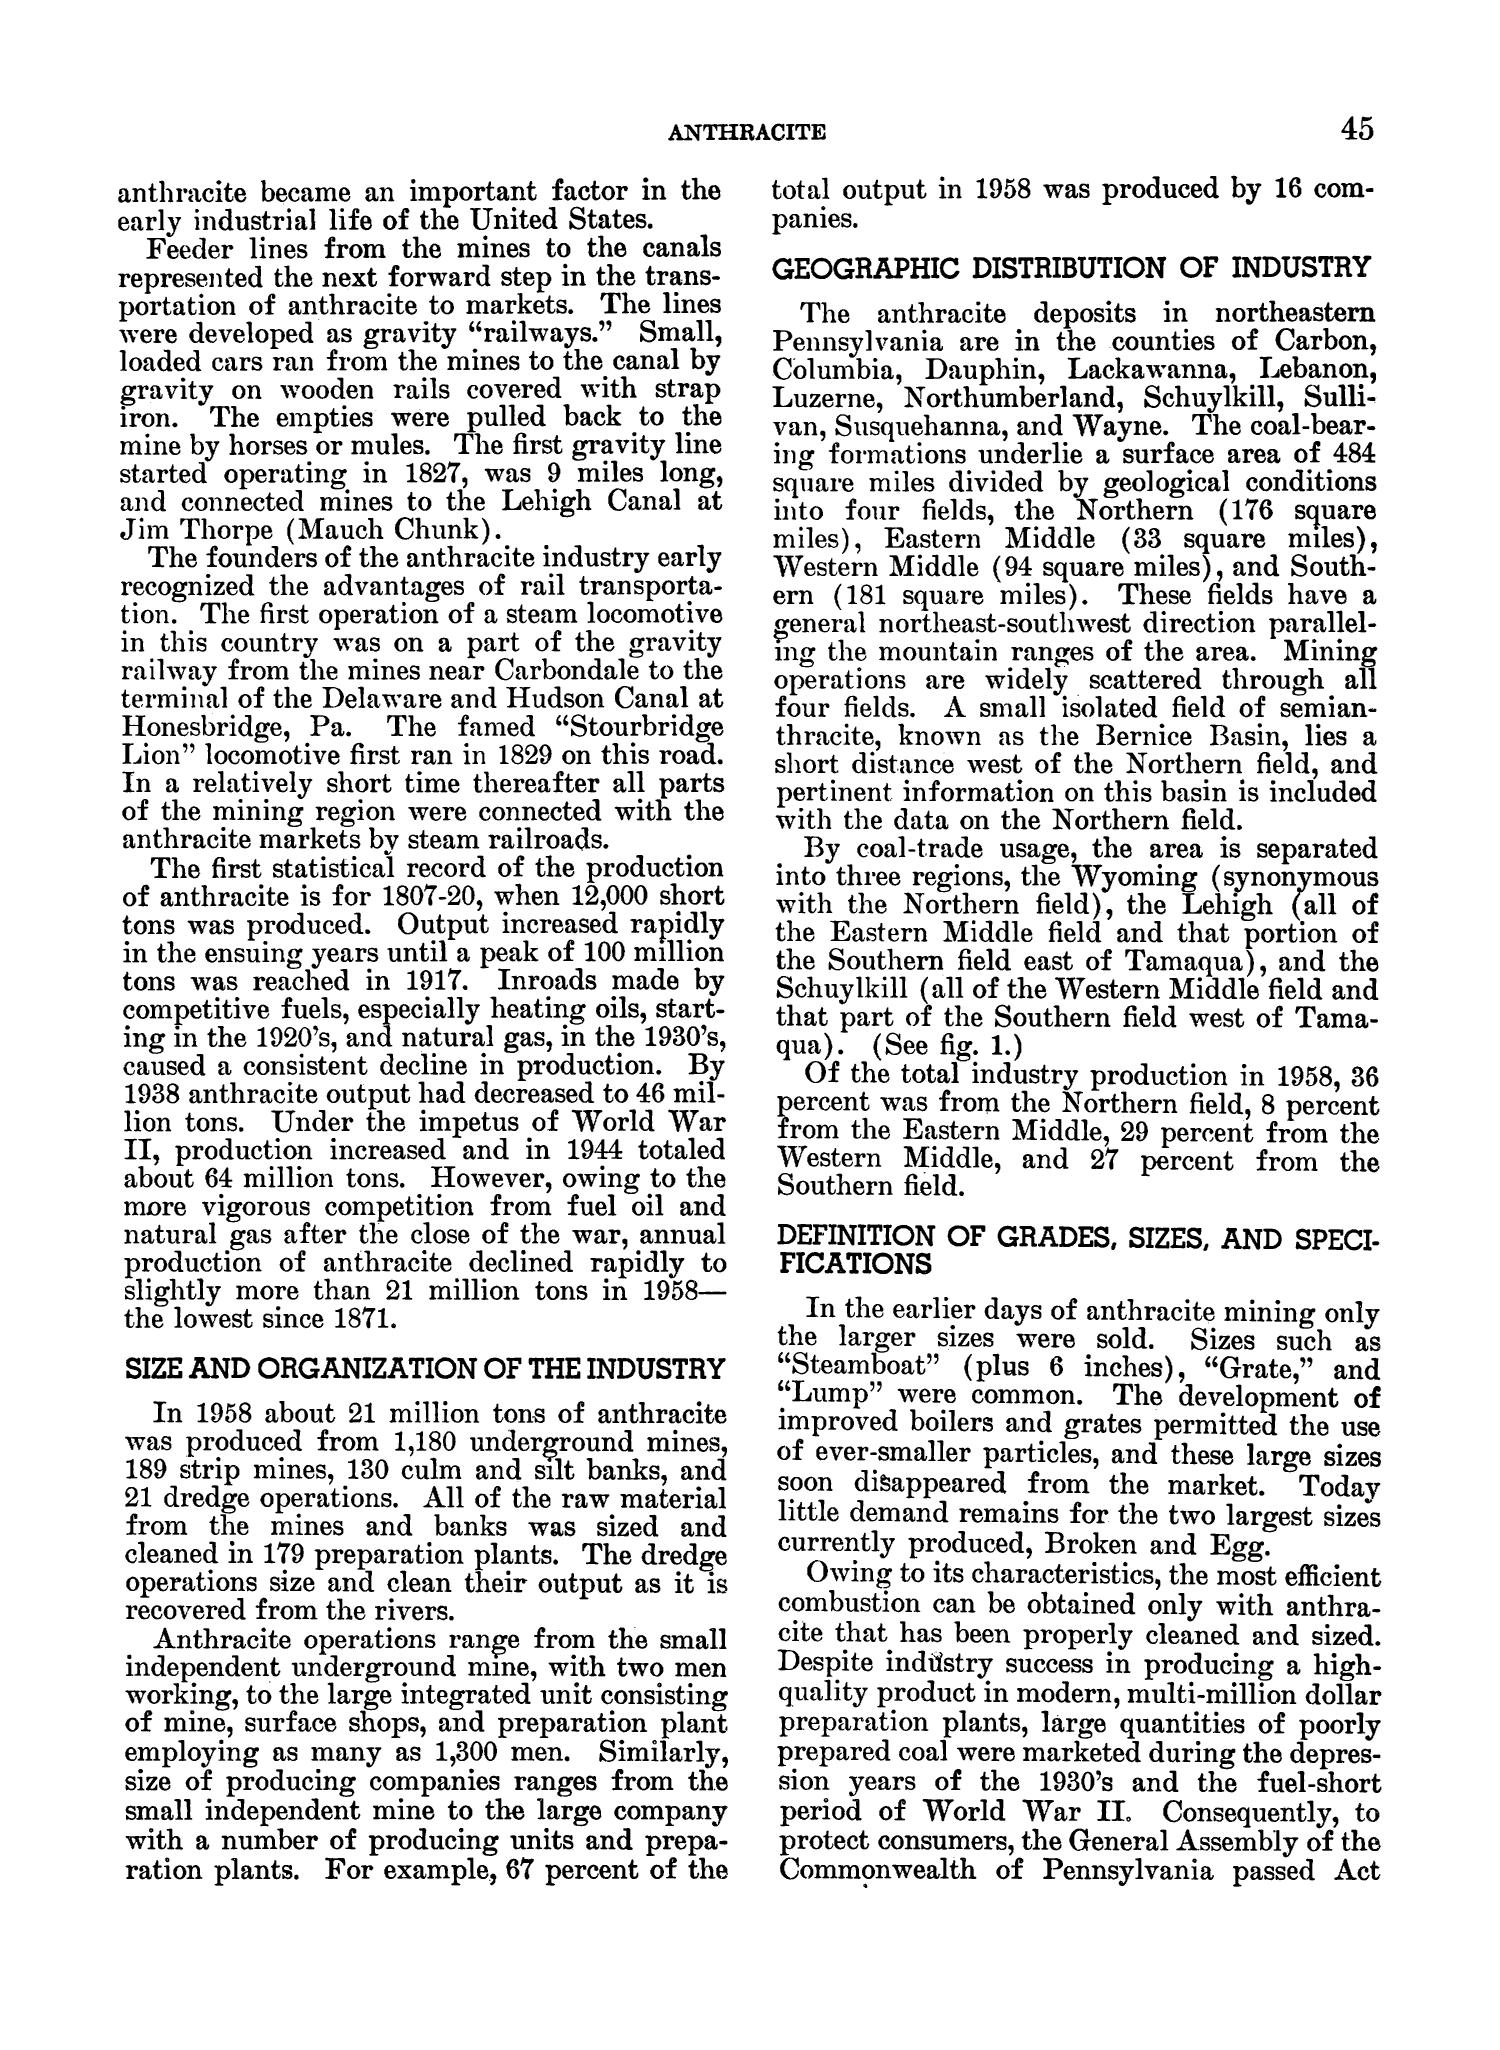 Mineral Facts and Problems: 1960 Edition                                                                                                      45